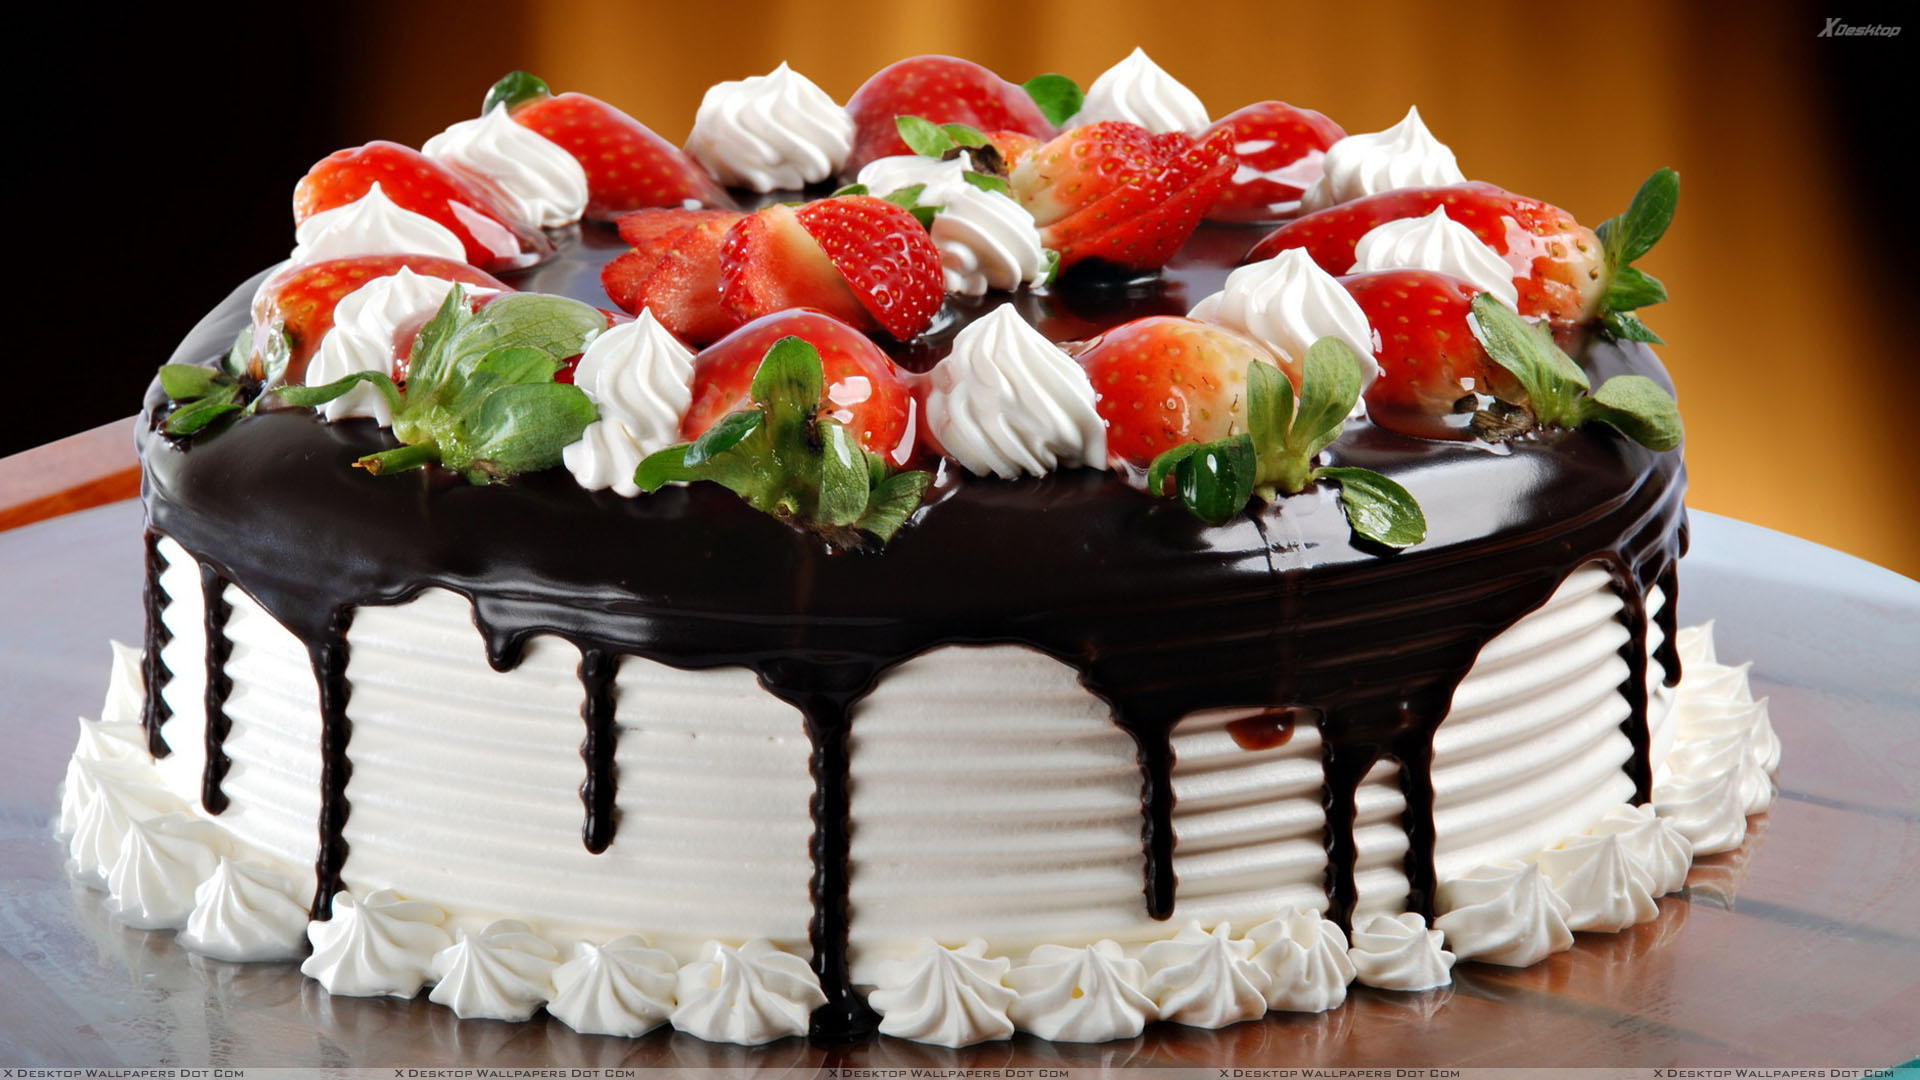 Strawberries And Chocolate Cake For Birthday Download 30